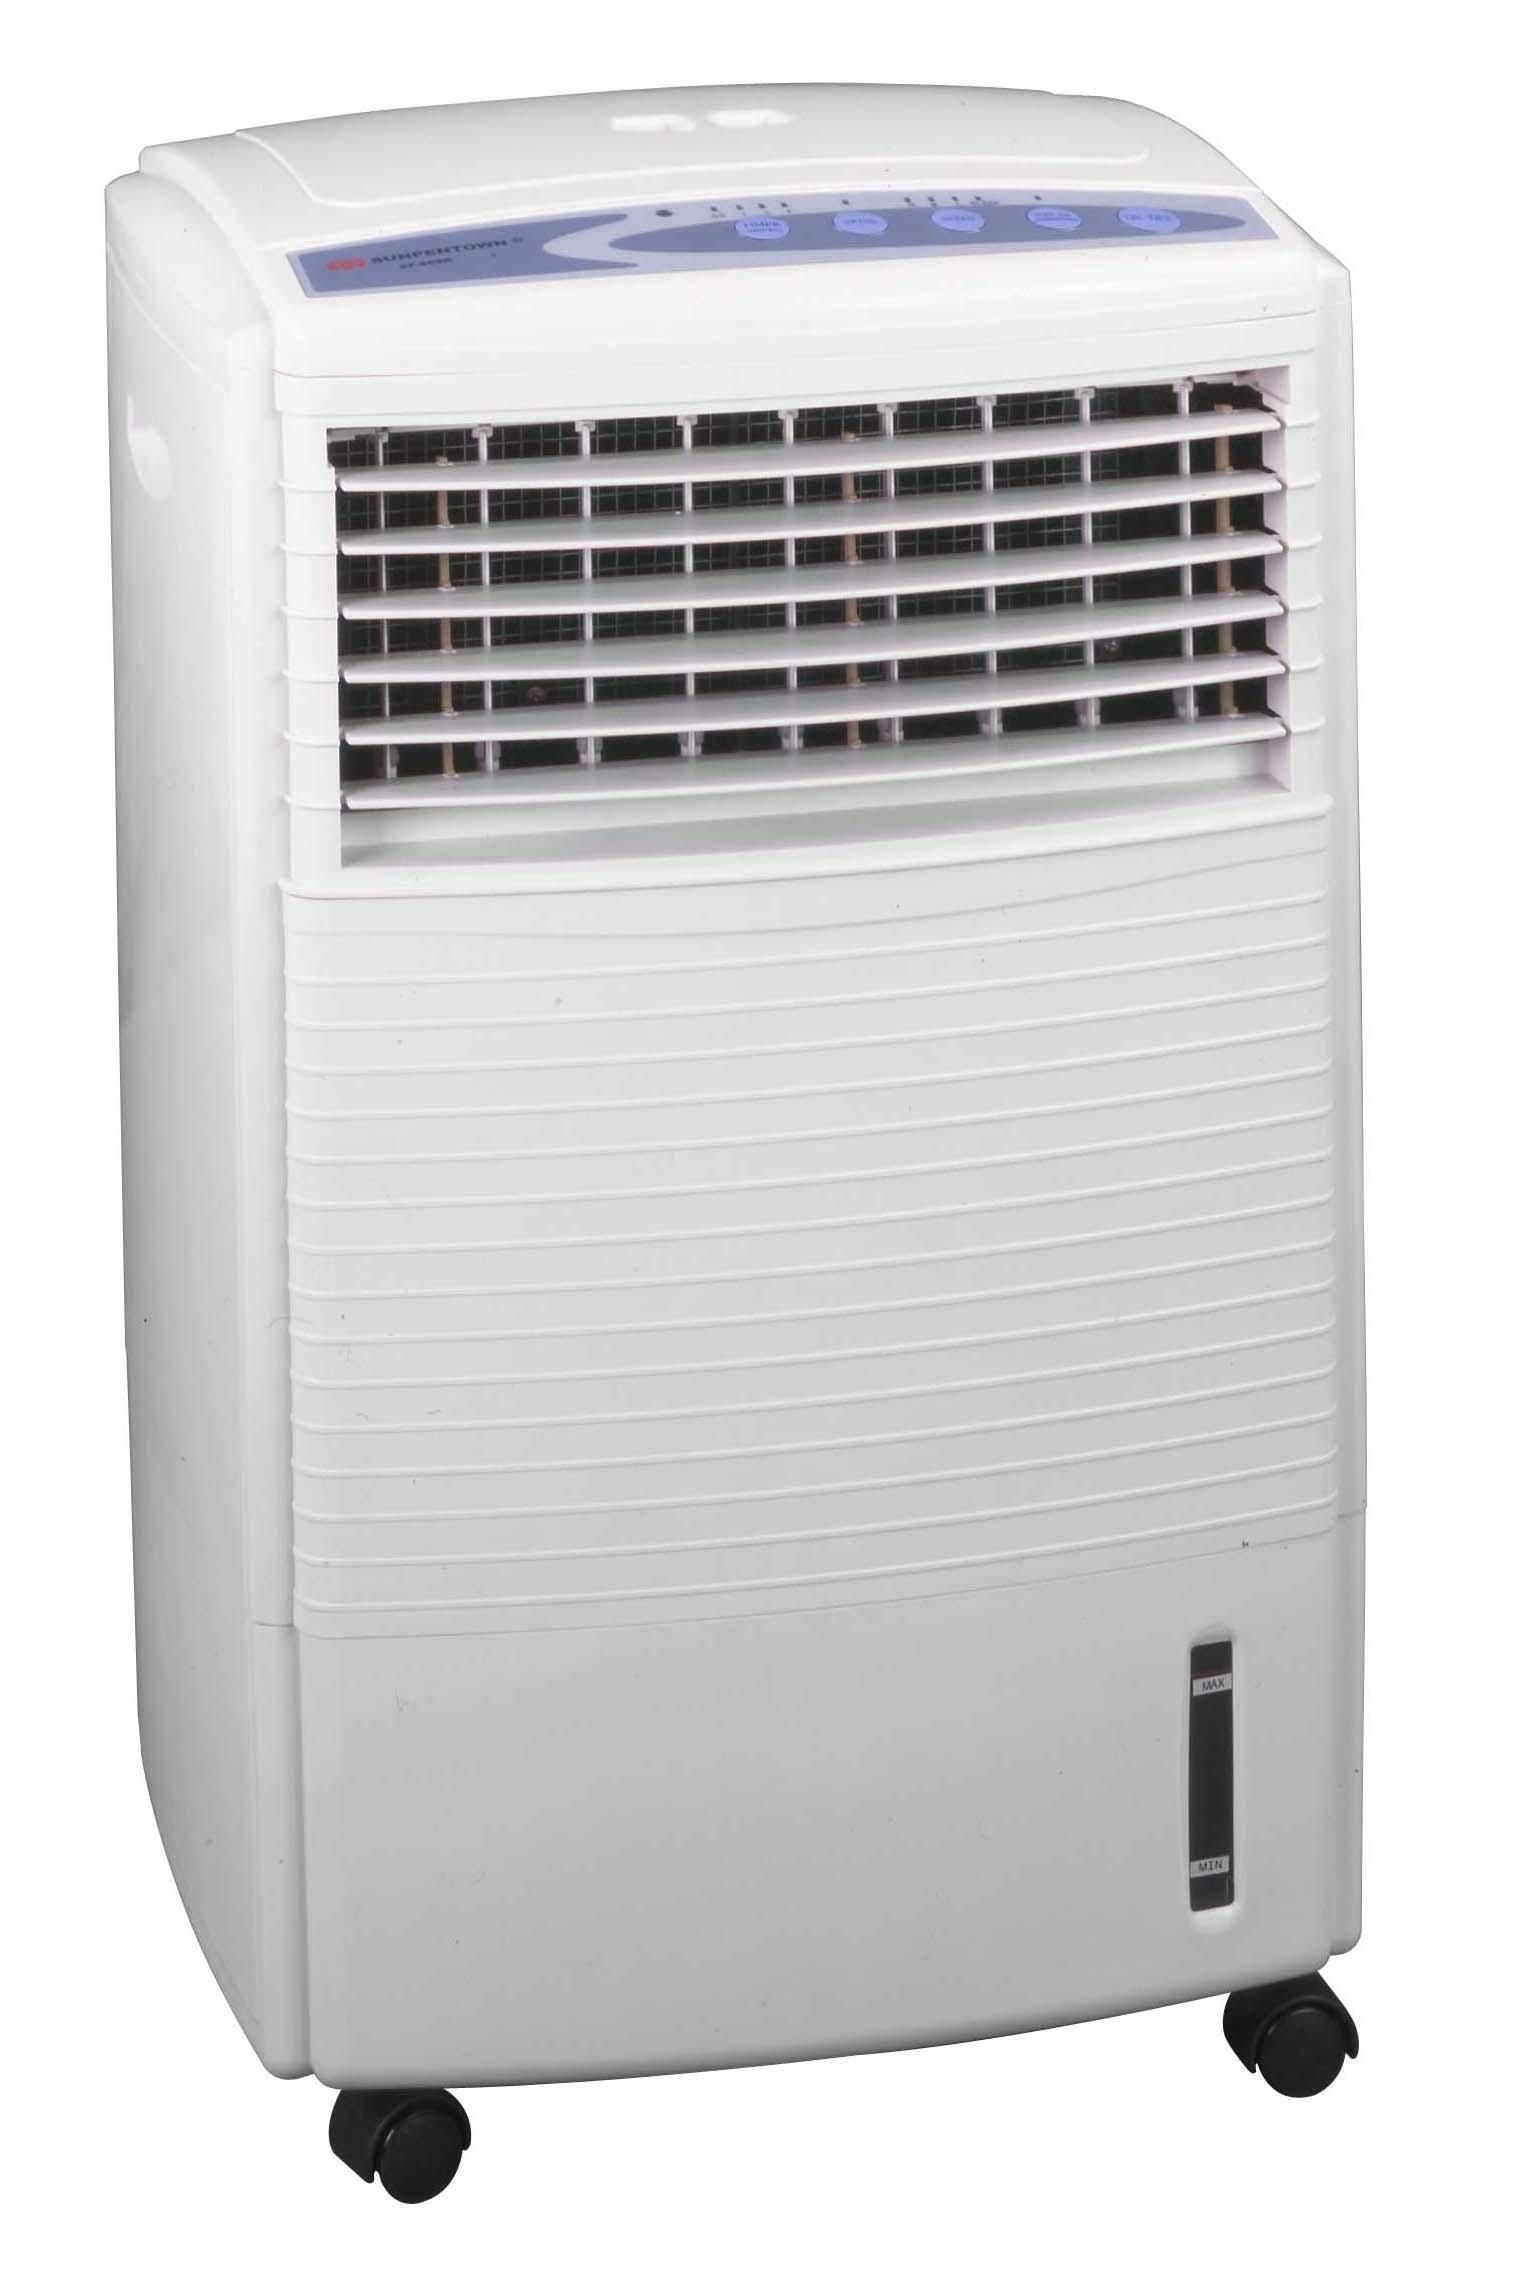 Looking for Swamp Cooler review? My home Climate offers